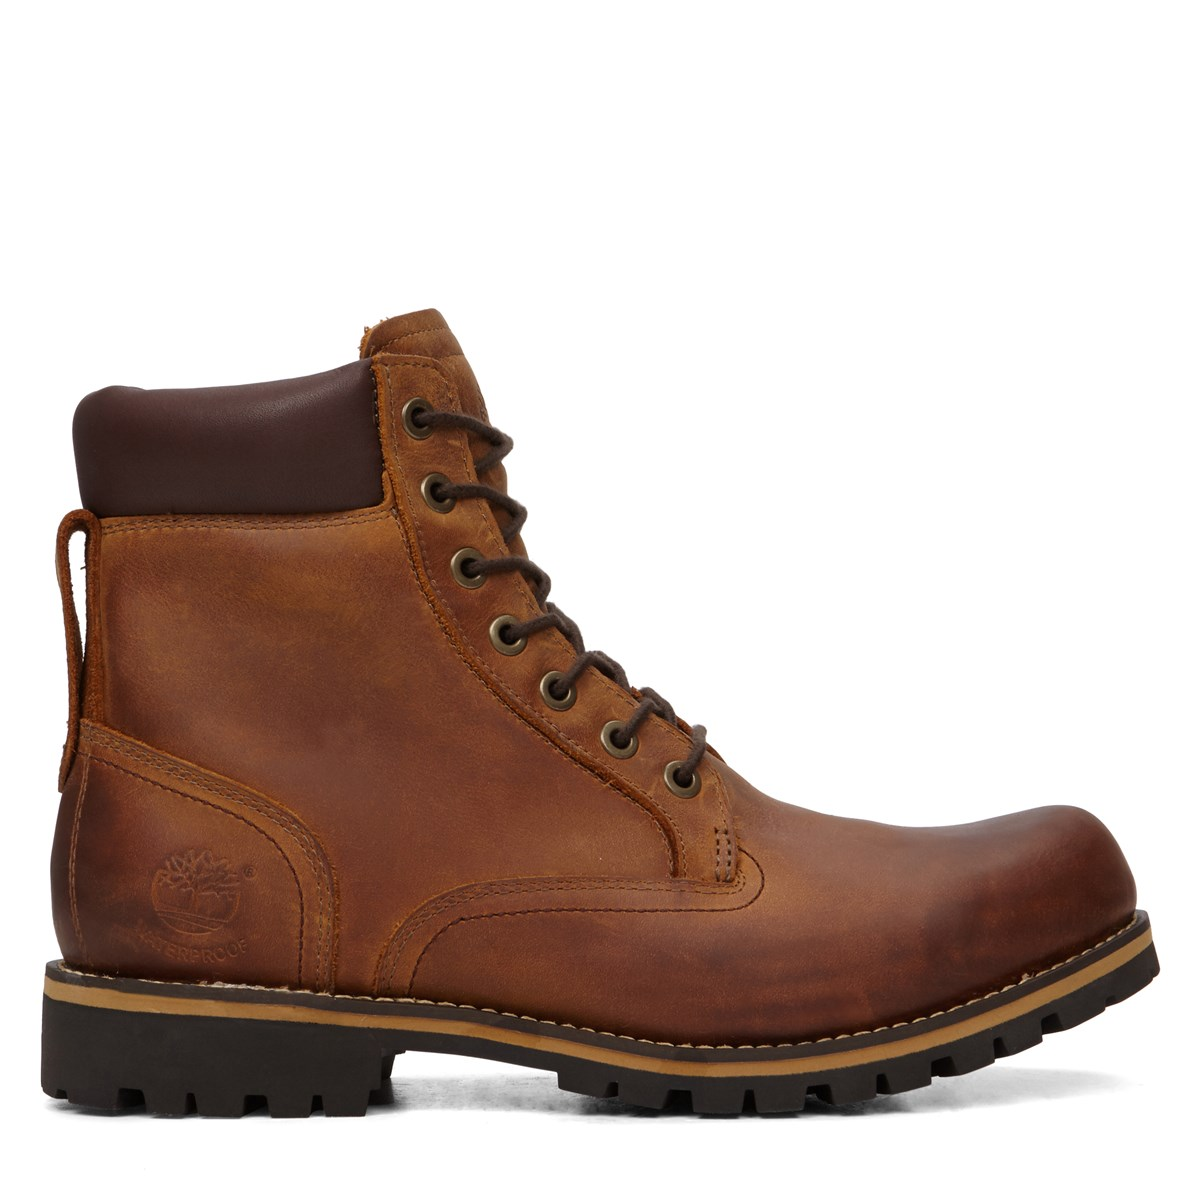 Men's Rugged 6 Plain Toe Boots in Brown